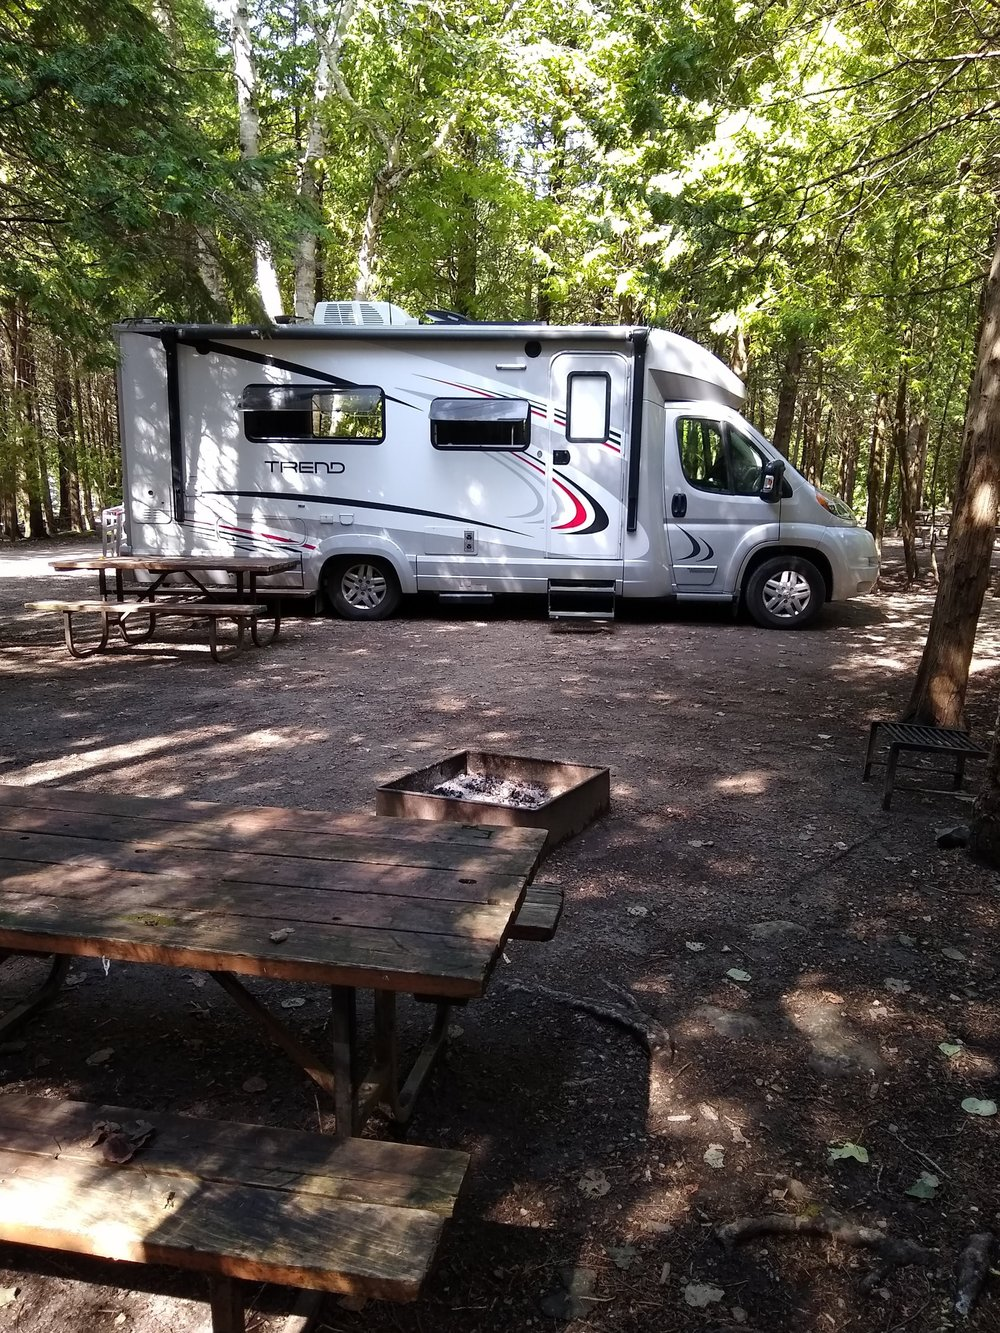 We've had zero problems with our Girard tankless water heater anytime we've been plugged in at a campsite. But, we've had a hard time with it providing hot water while boondocking.